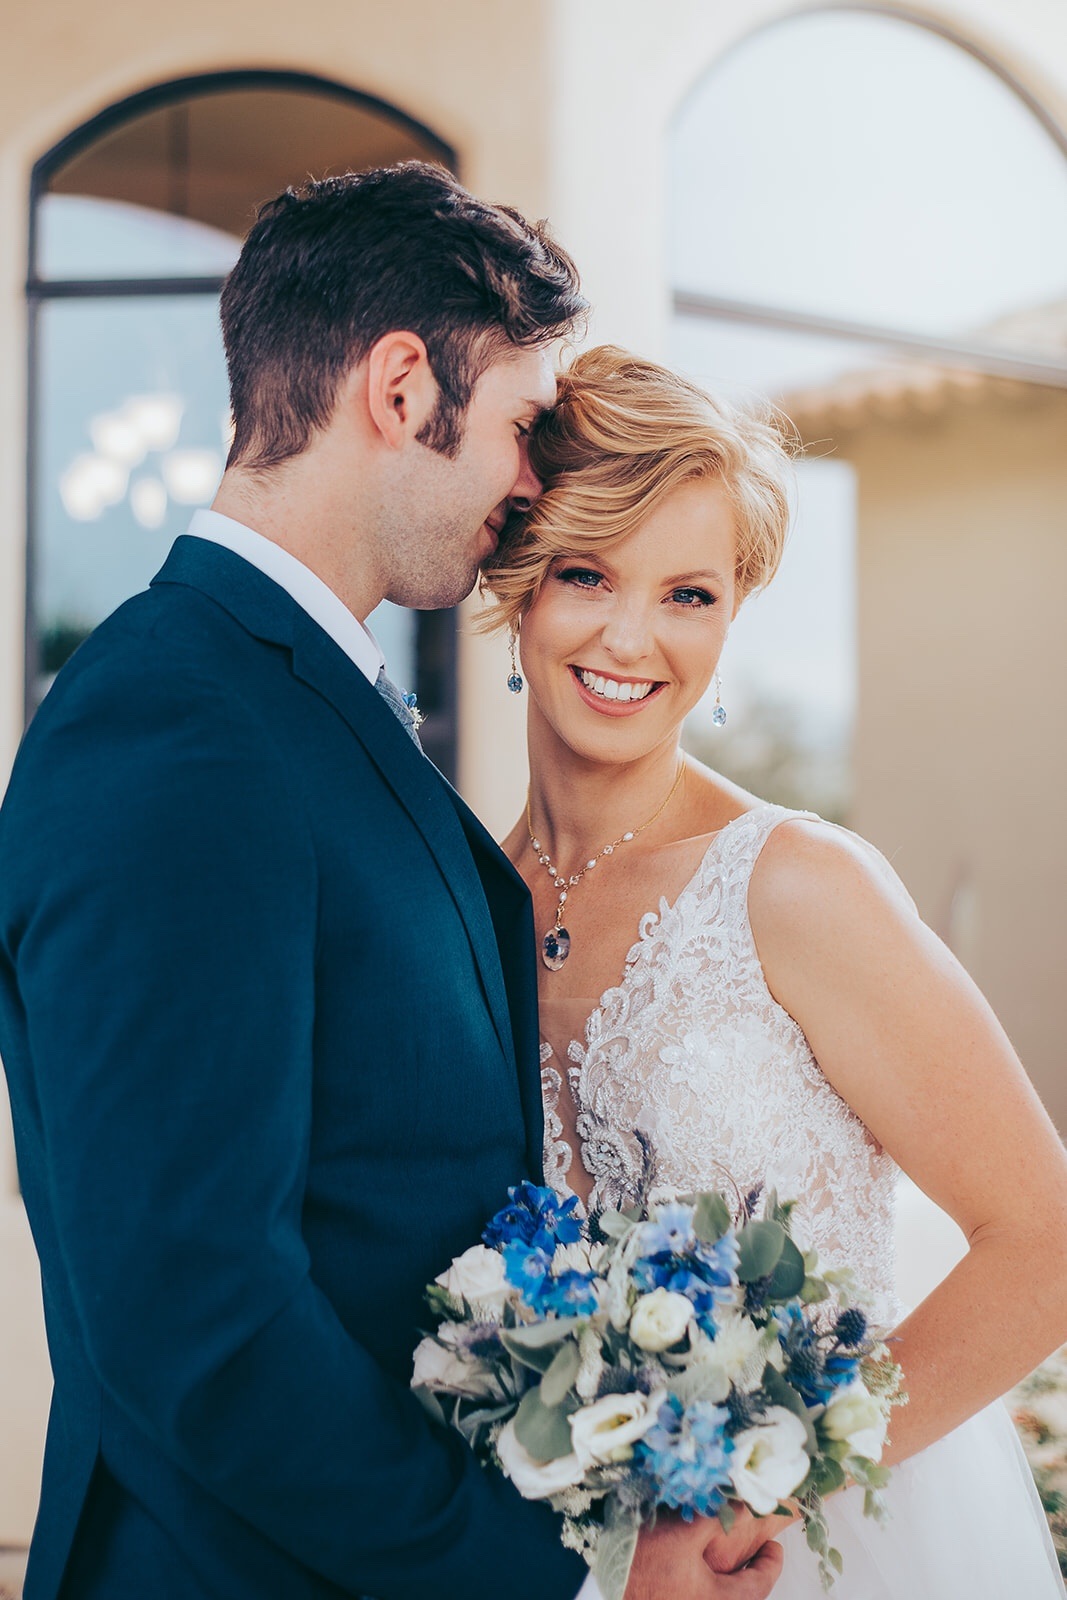 Wedding couple smiling because they had a great time planning their wedding with Front Paige Events